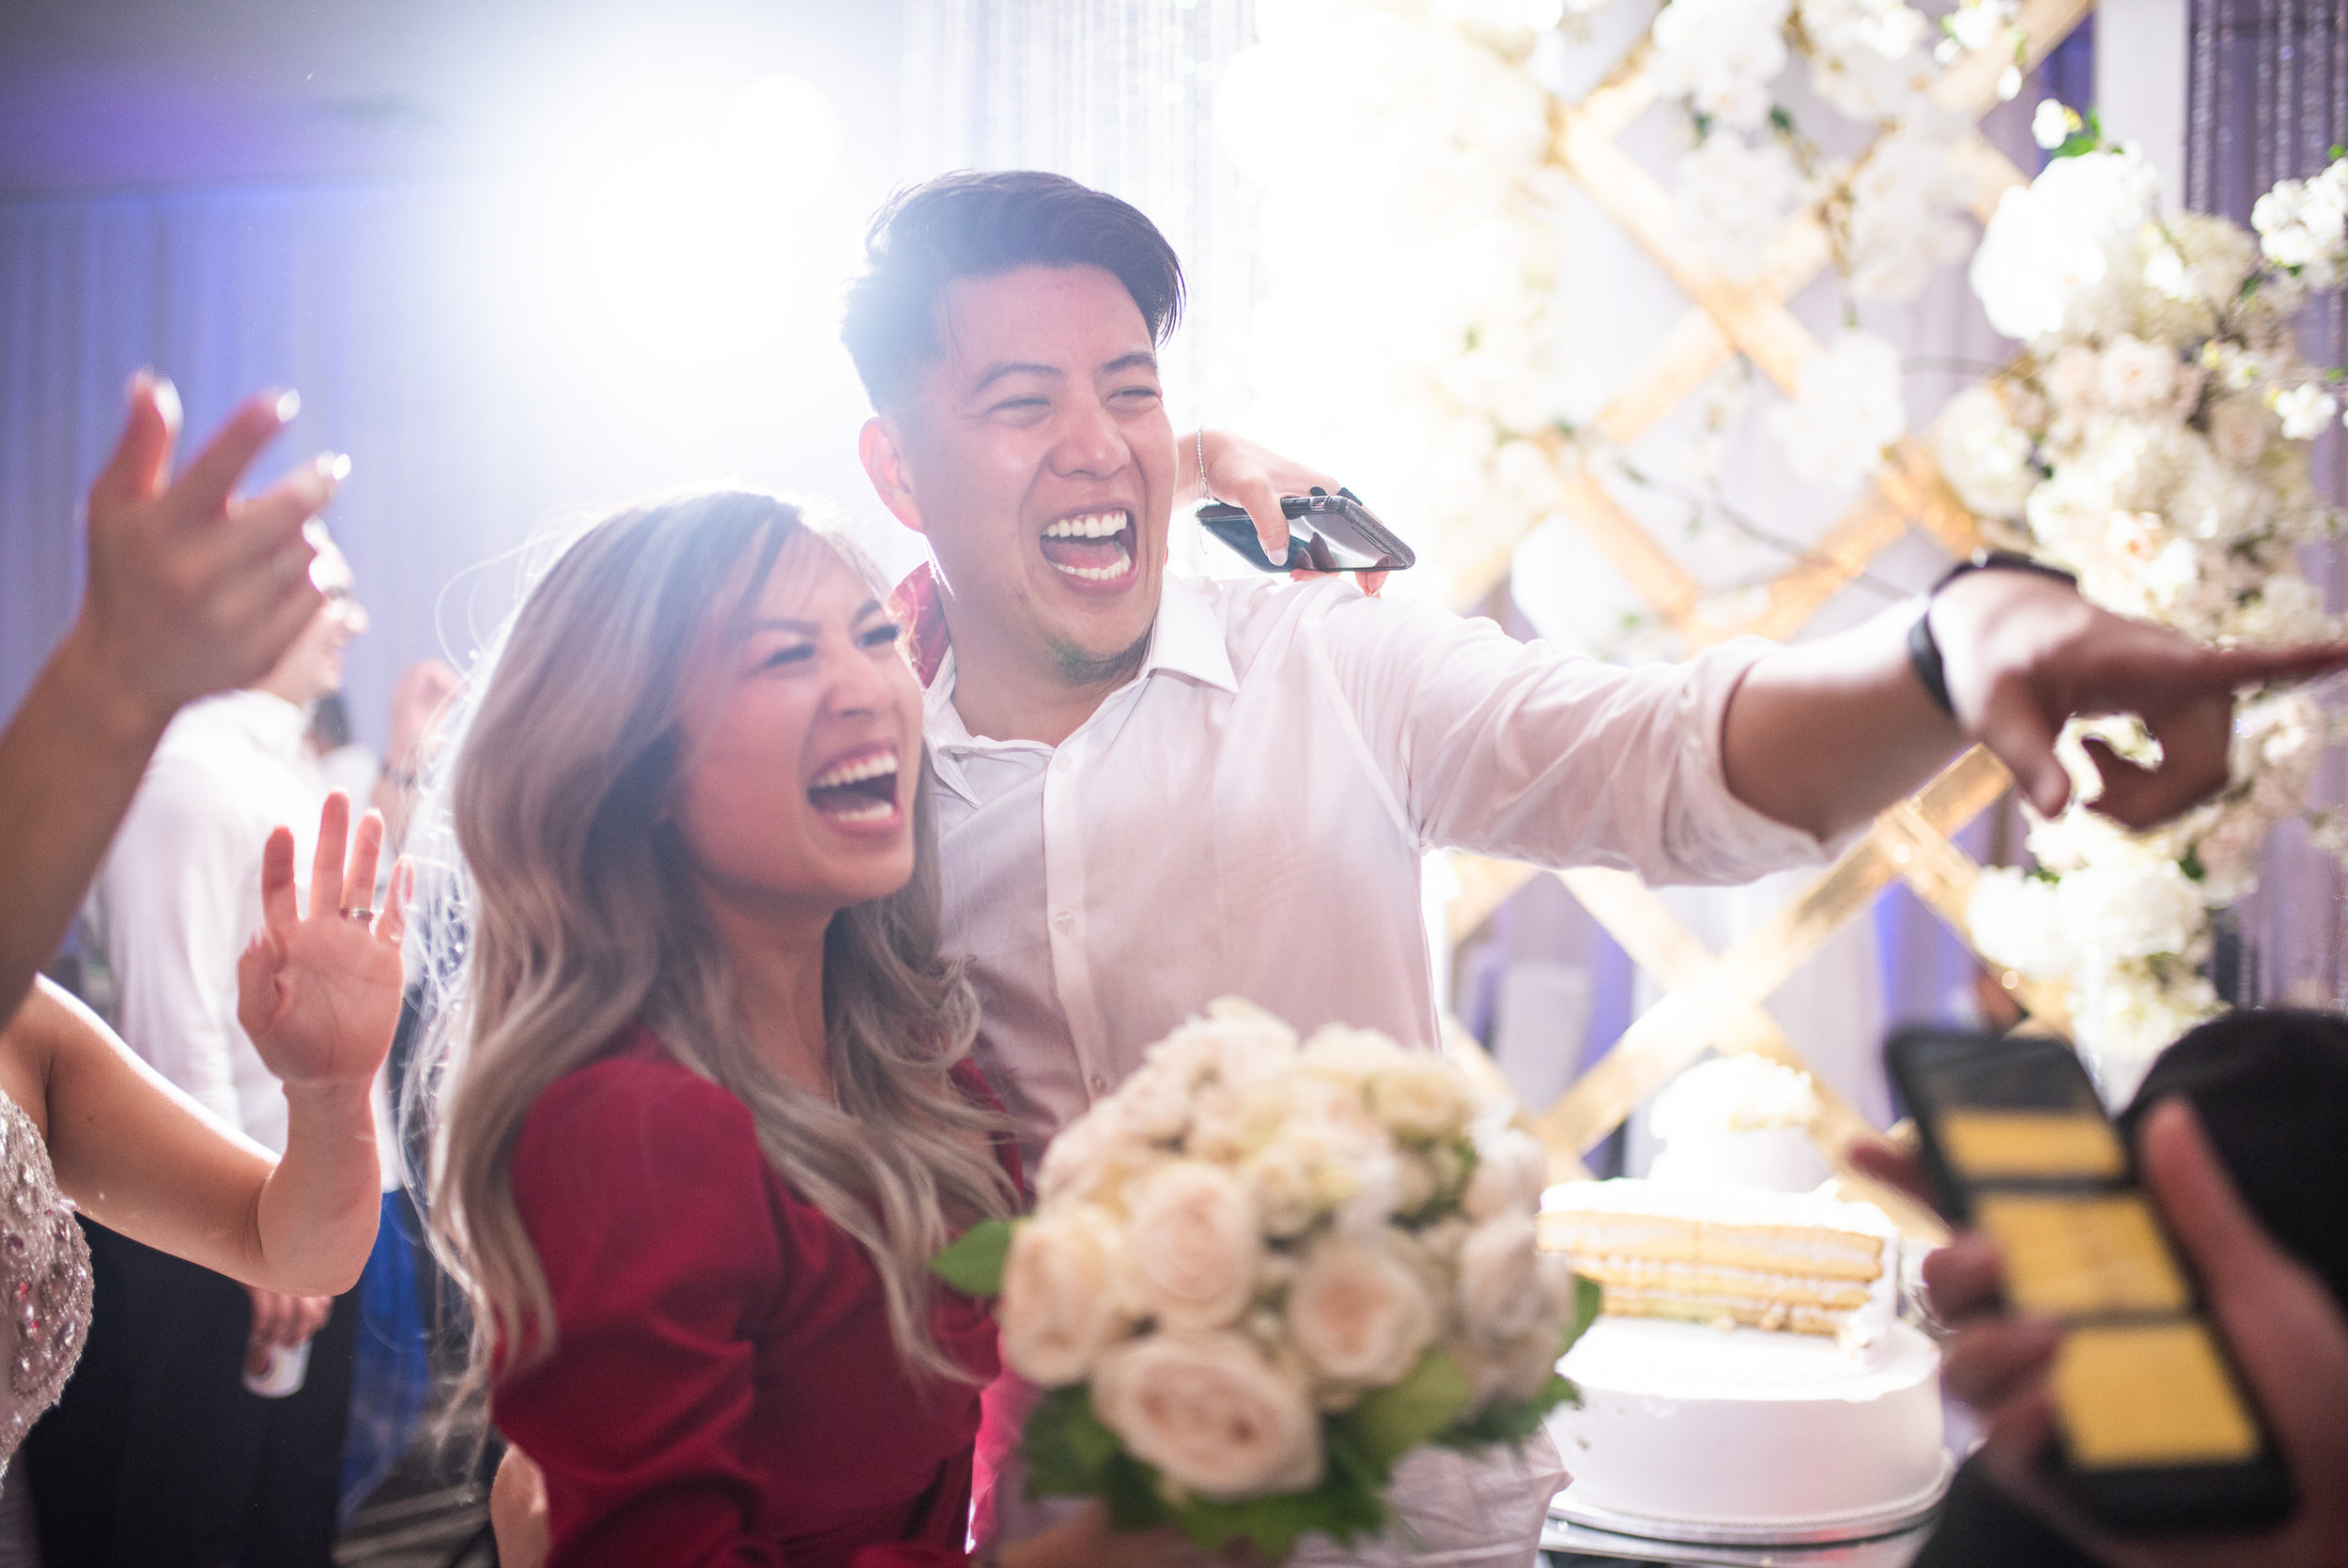 Dream_Wedding_Thanh_Thanh-2967.jpg